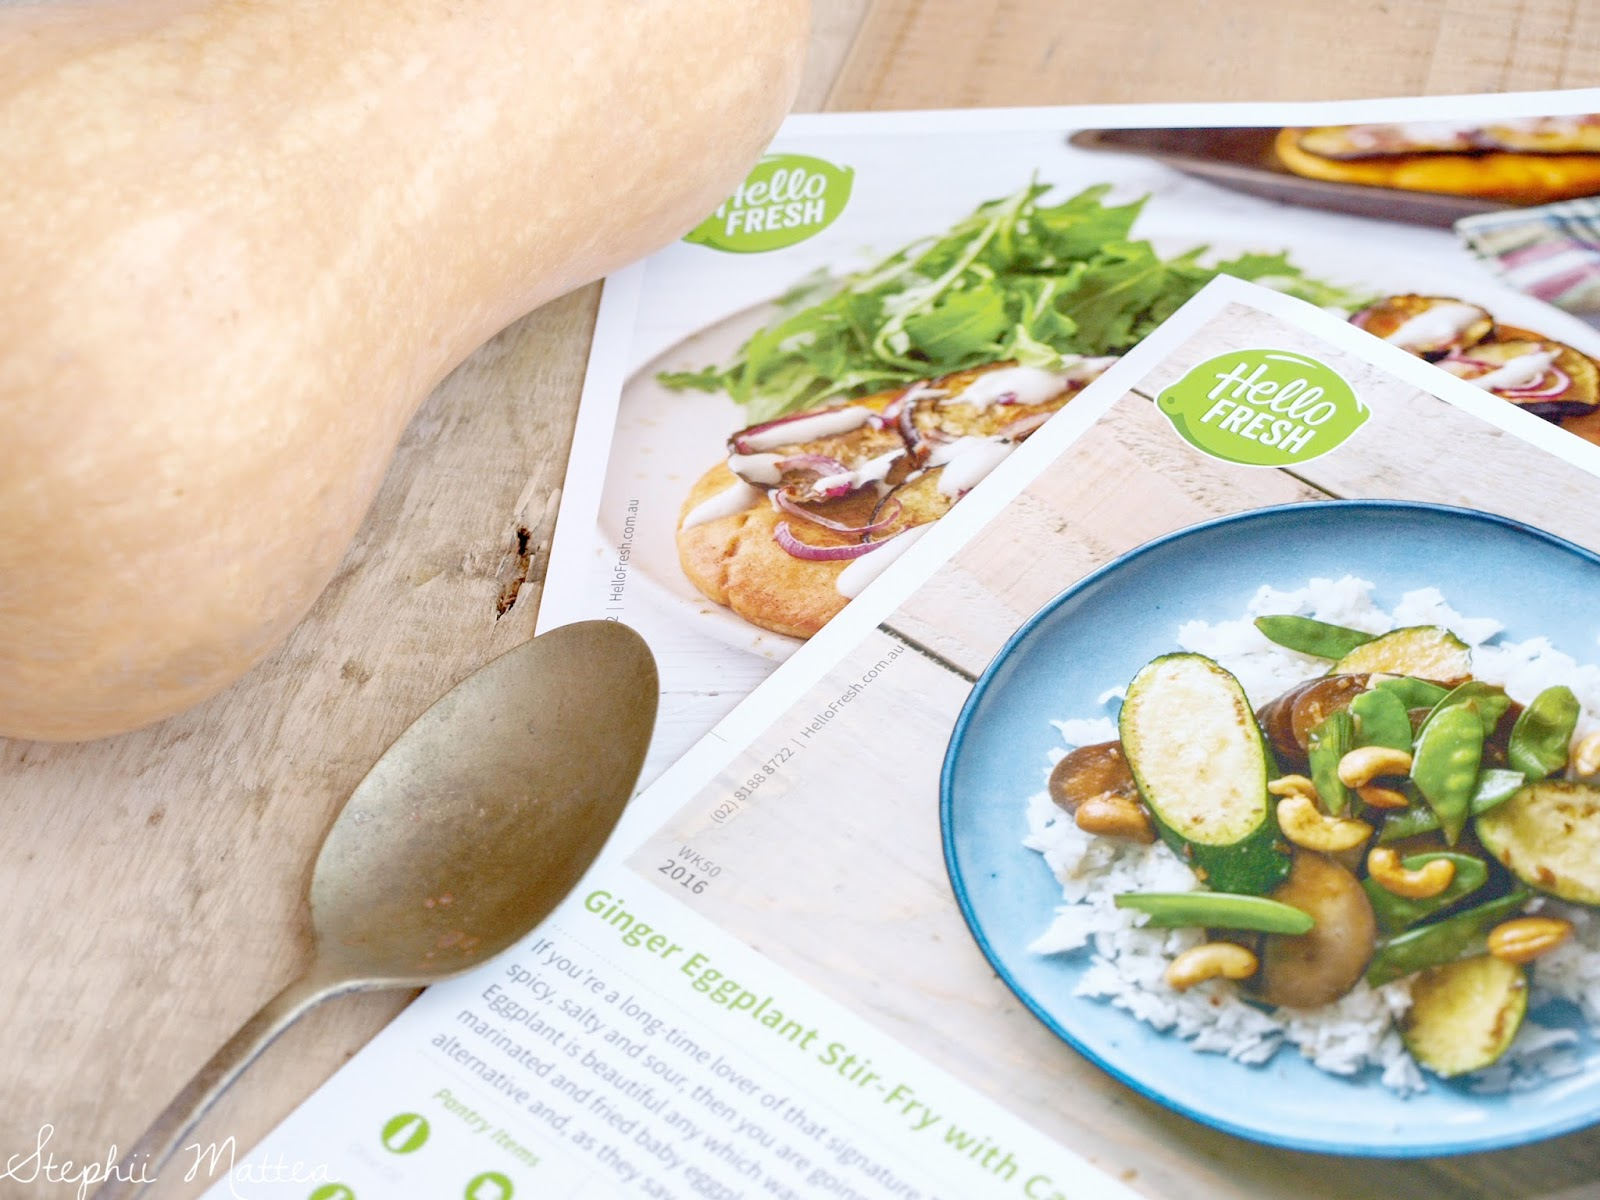 Hellofresh  Meal Kit Delivery Service Coupon Code All In One April 2020